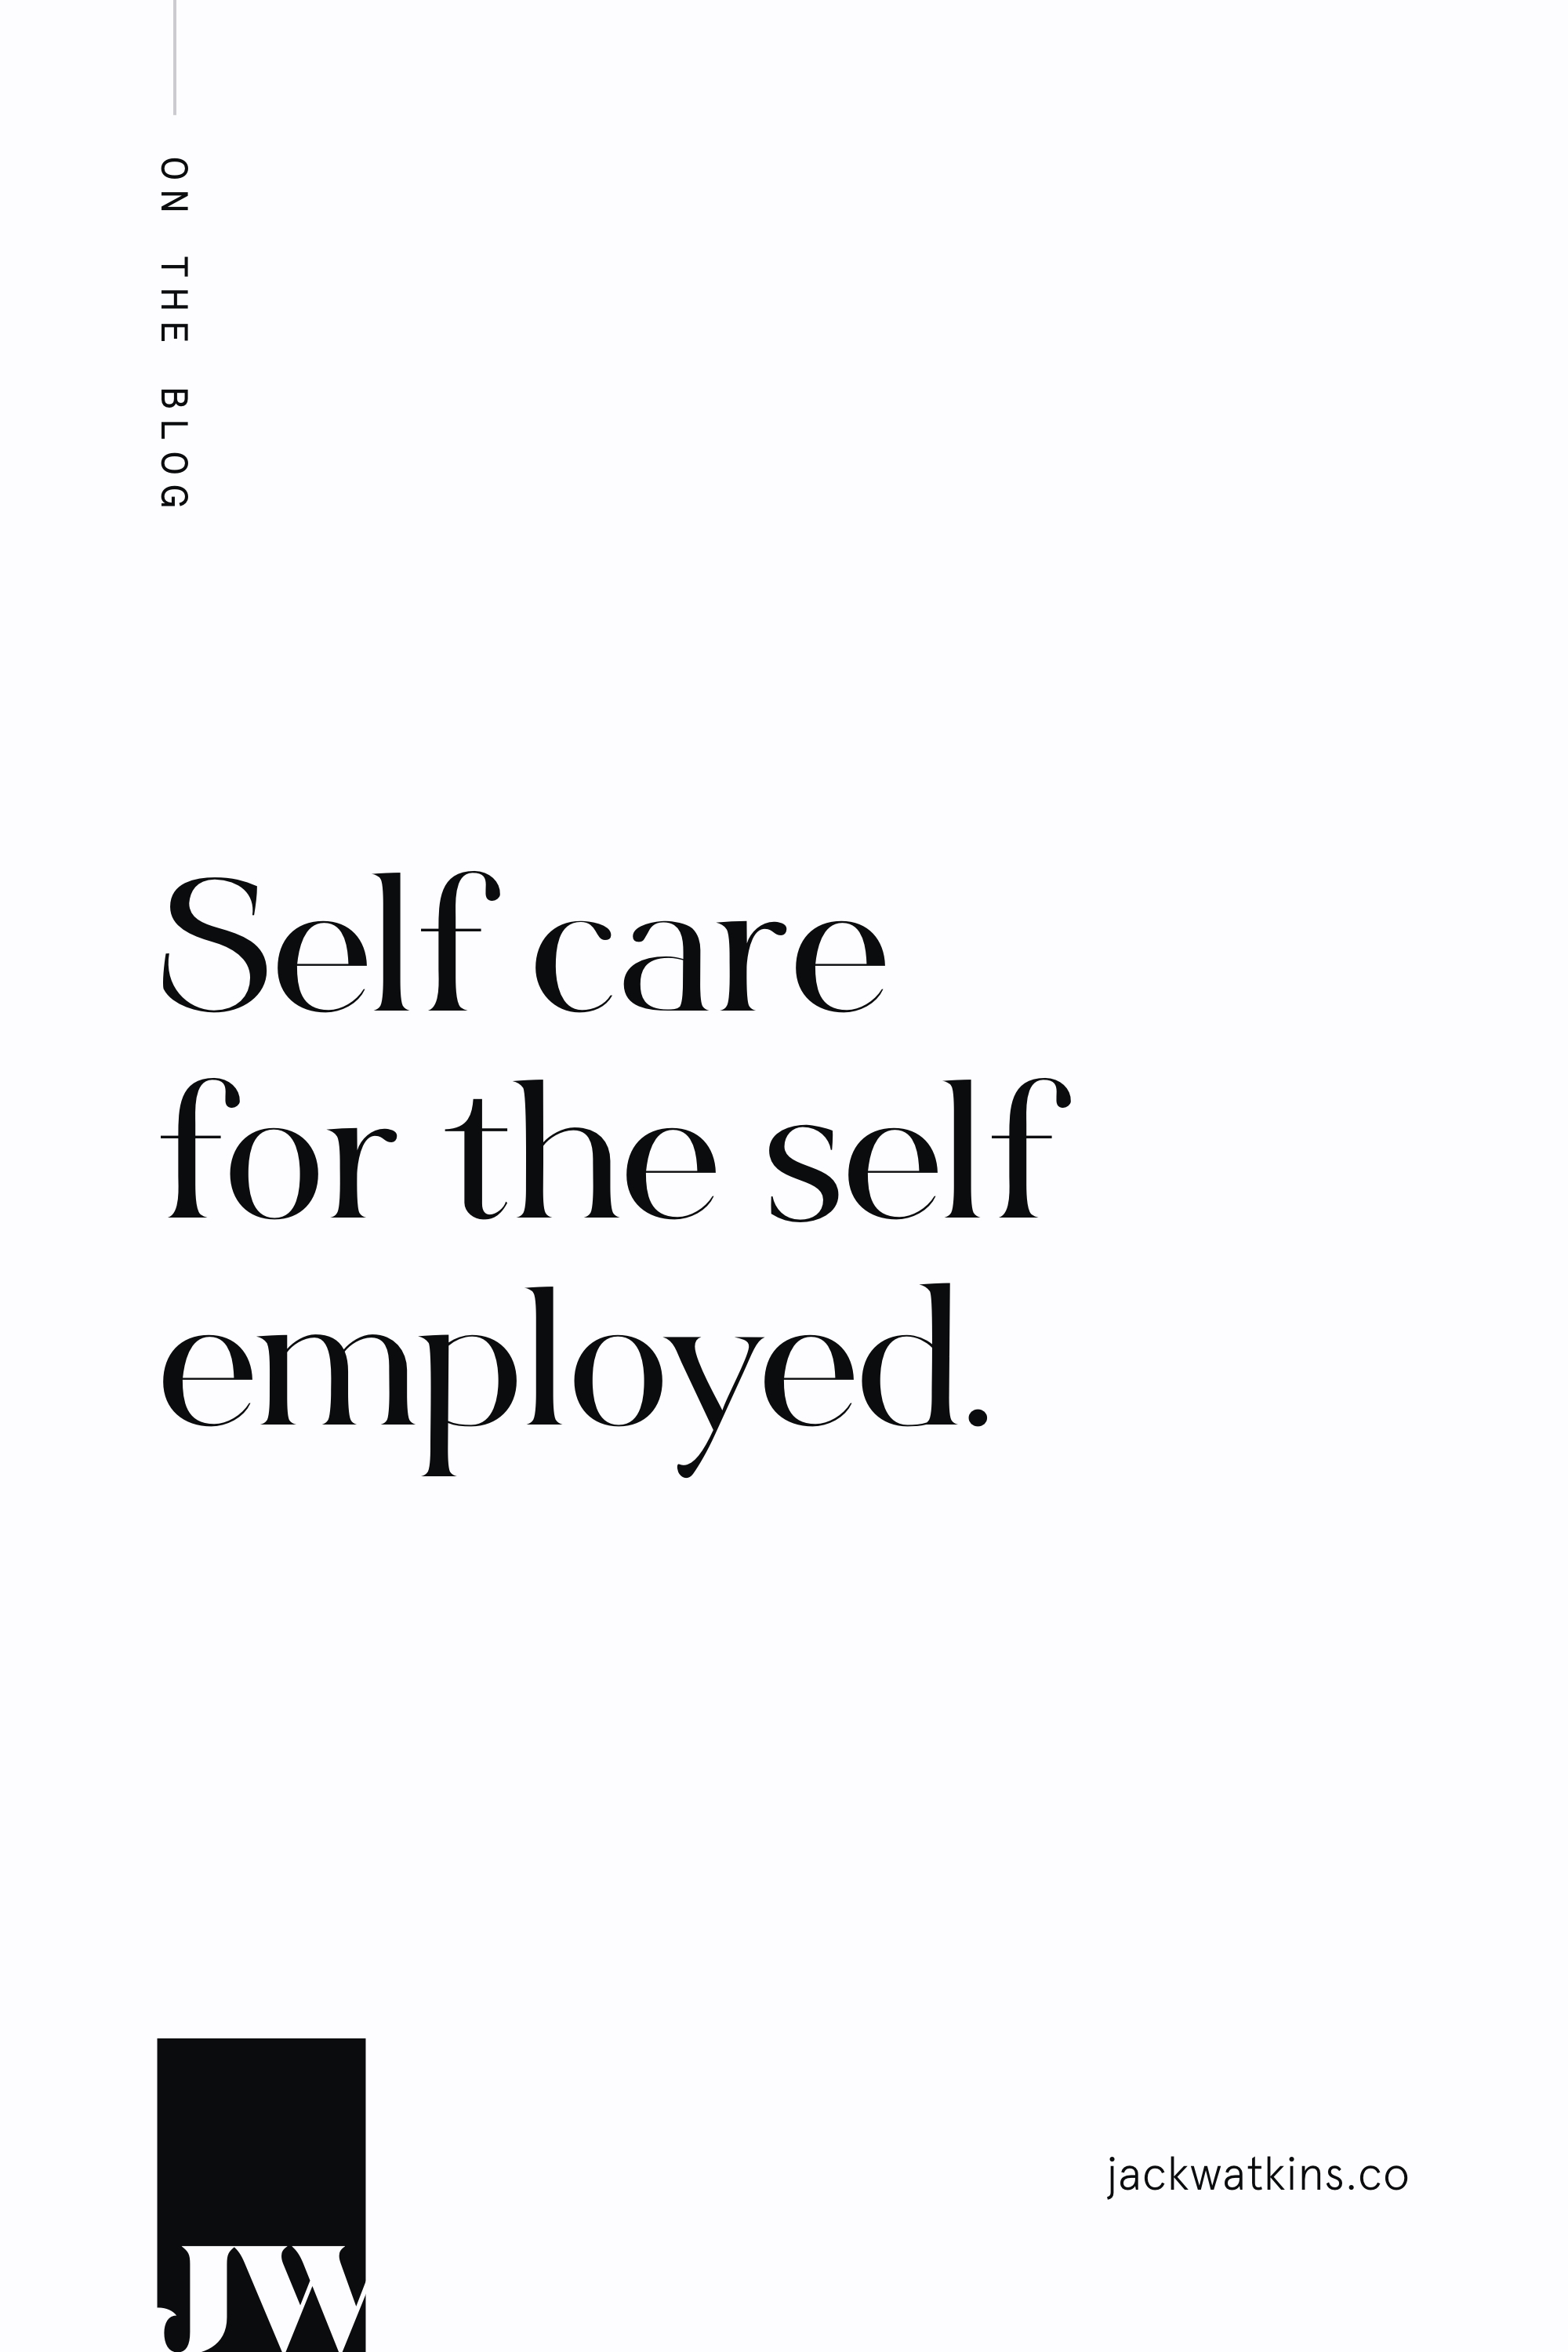 Self care for the self employed.